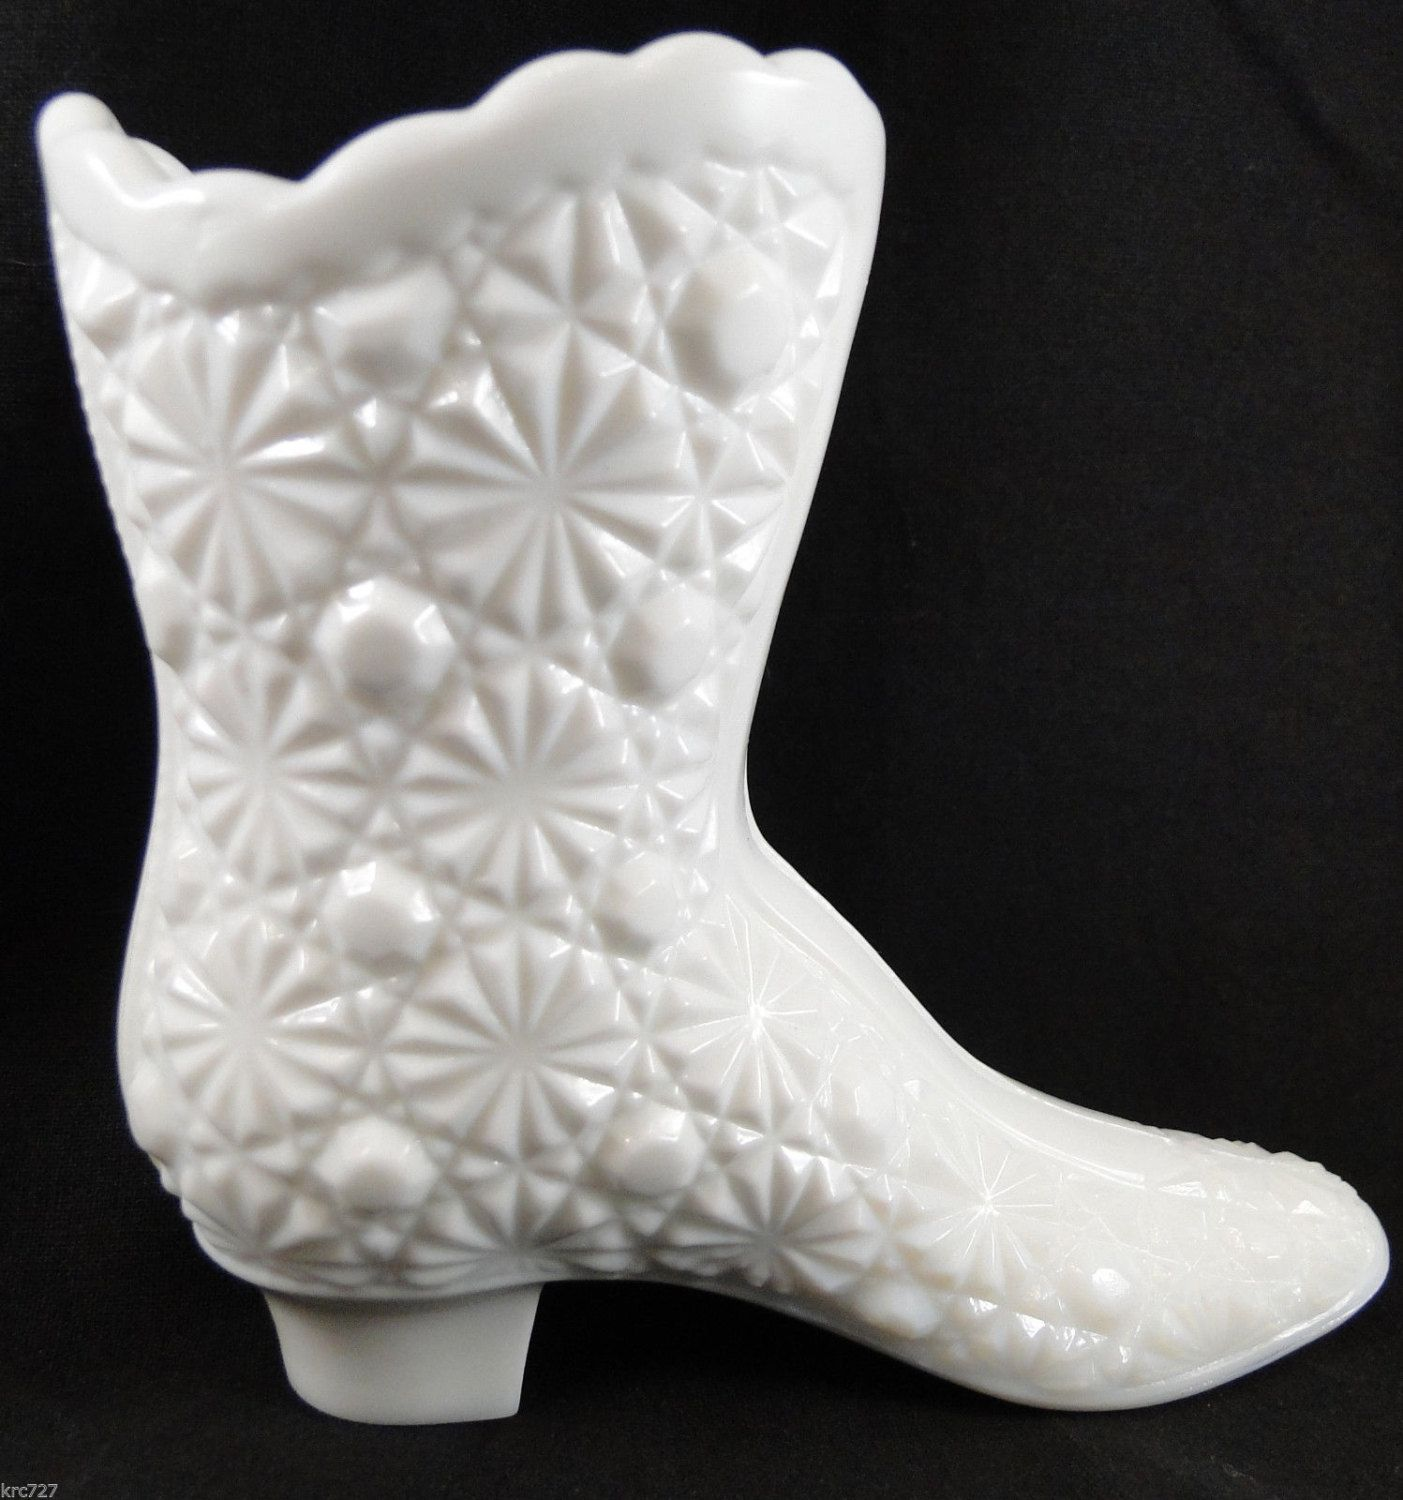 Vintage Fenton Glass White Milk Boot Shoe Daisy Button FREE SHIPPING USA by KRCsCloset on Etsy https://www.etsy.com/listing/207863698/vintage-fenton-glass-white-milk-boot Another thrift shop find!